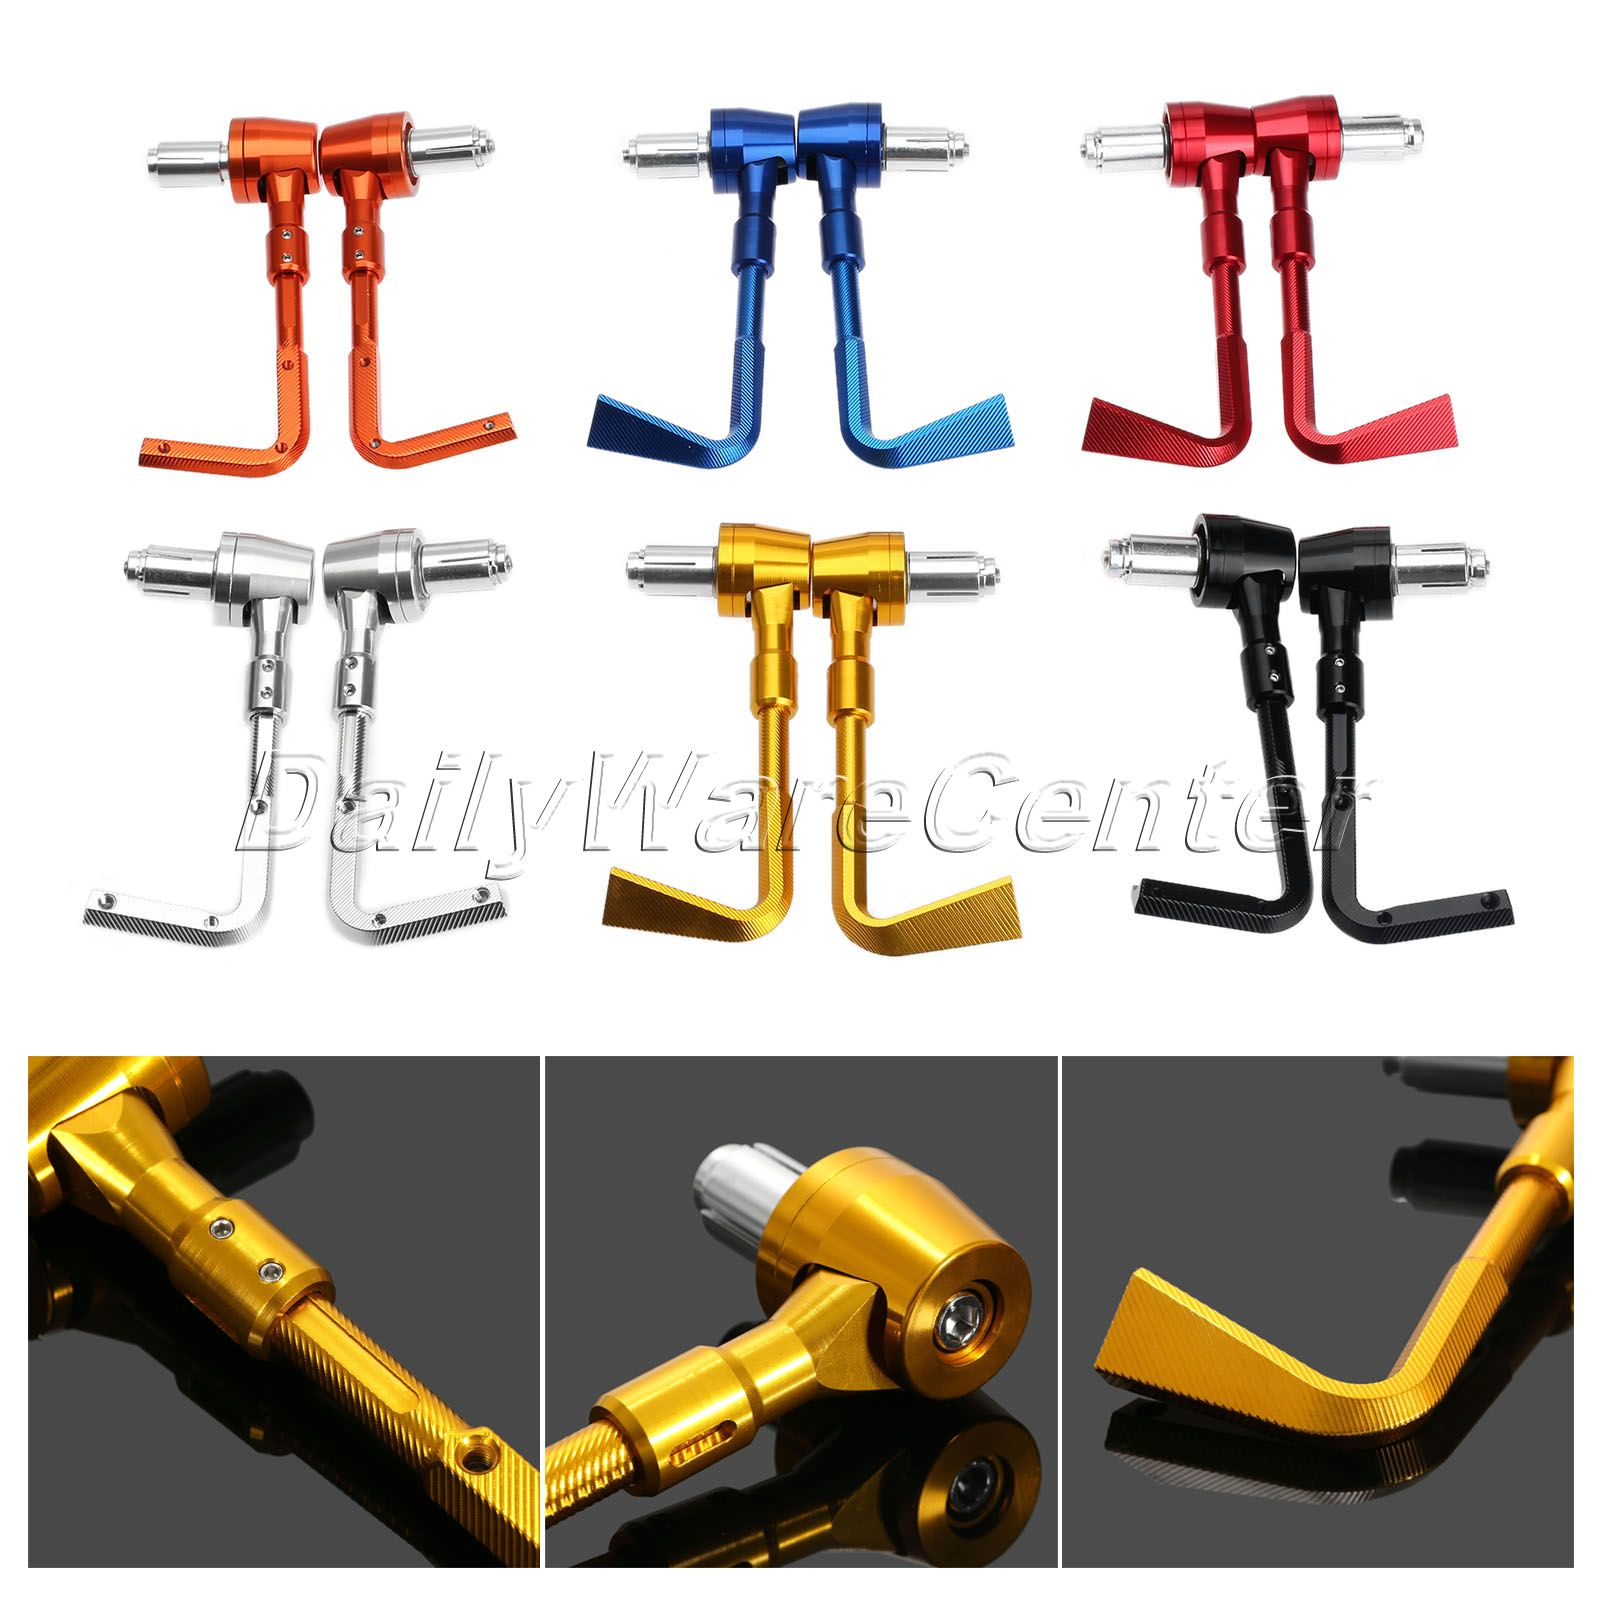 Universal 7/8 22mm CNC Handlebar Brake Clutch Protector Motorcycle Lever Guard Proguard for HONDA KAWASAKI KTM YAMAHA universal 7 8 22mm cnc handlebar protector lever brake clutch protect motorcycle guard proguard for ktm honda 990 2008 013